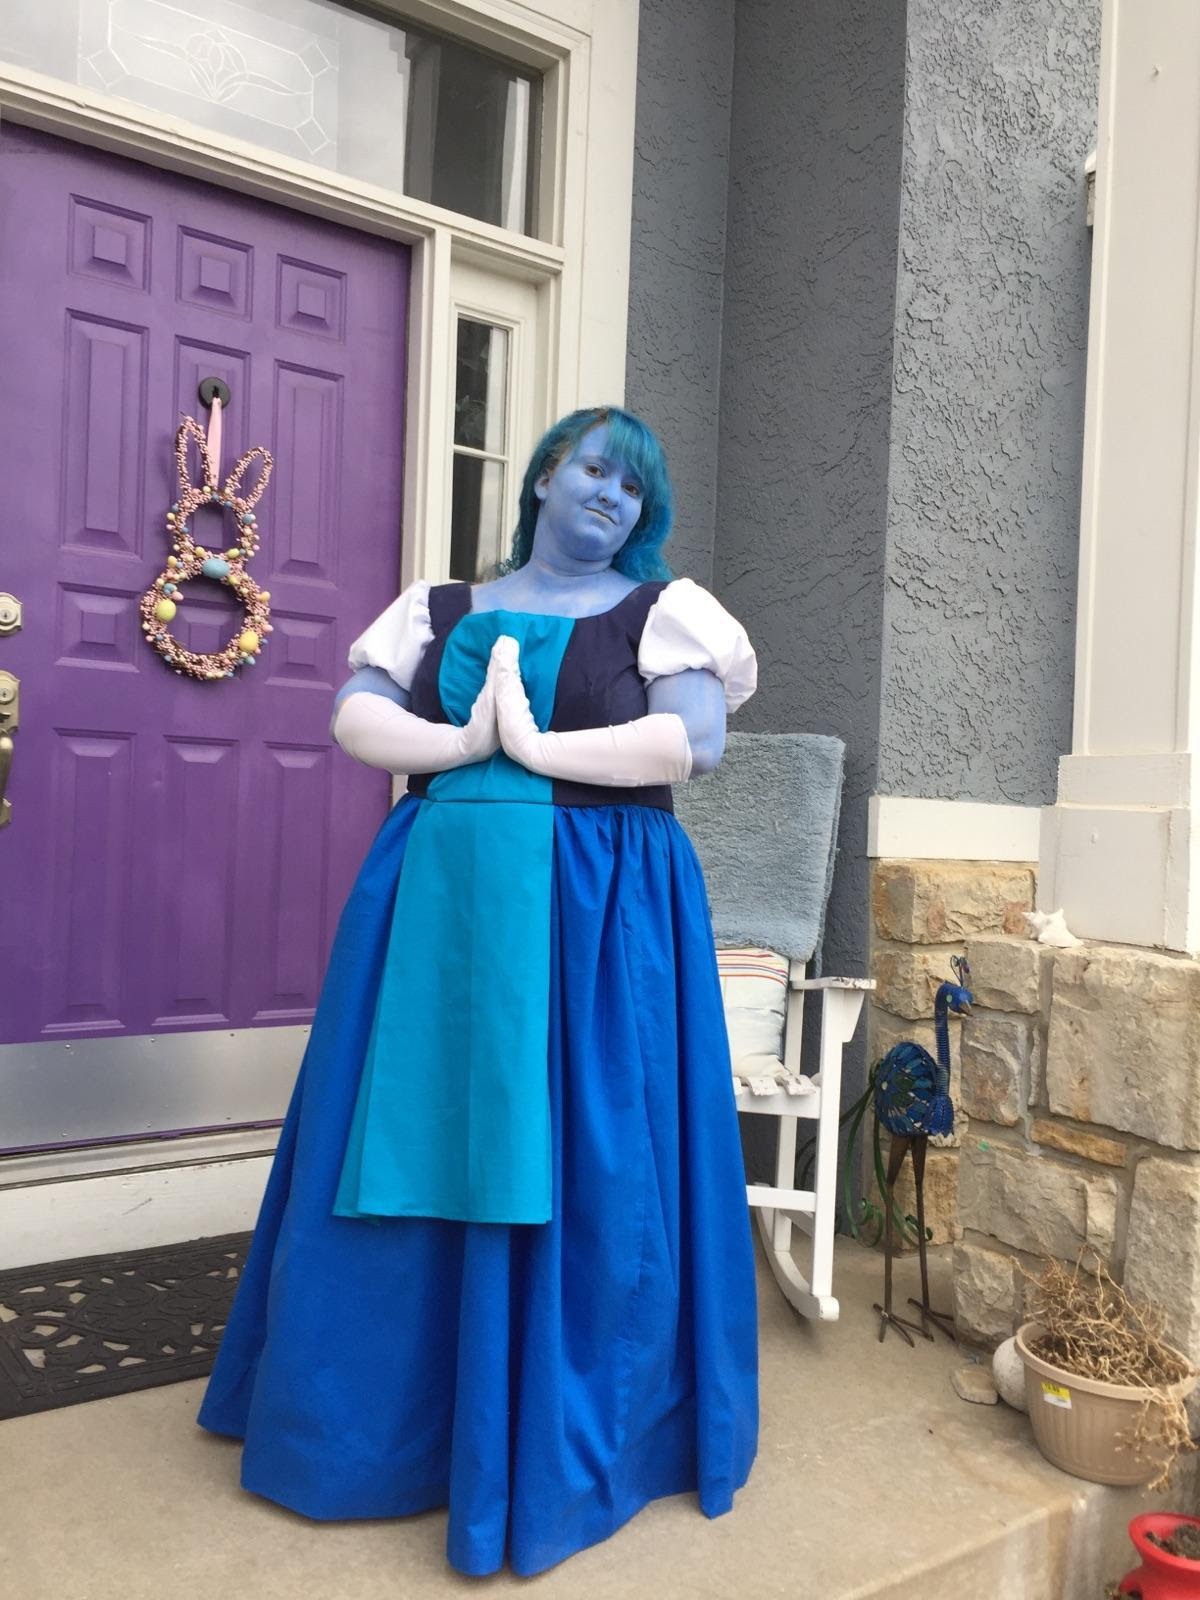 Okay, my first photo of myself that is going to be posted. Do I look fat? Yes. Did I do a few things wrong with the cosplay? Also yes. Are there better Sapphire cosplays than me? Definitely. But I...